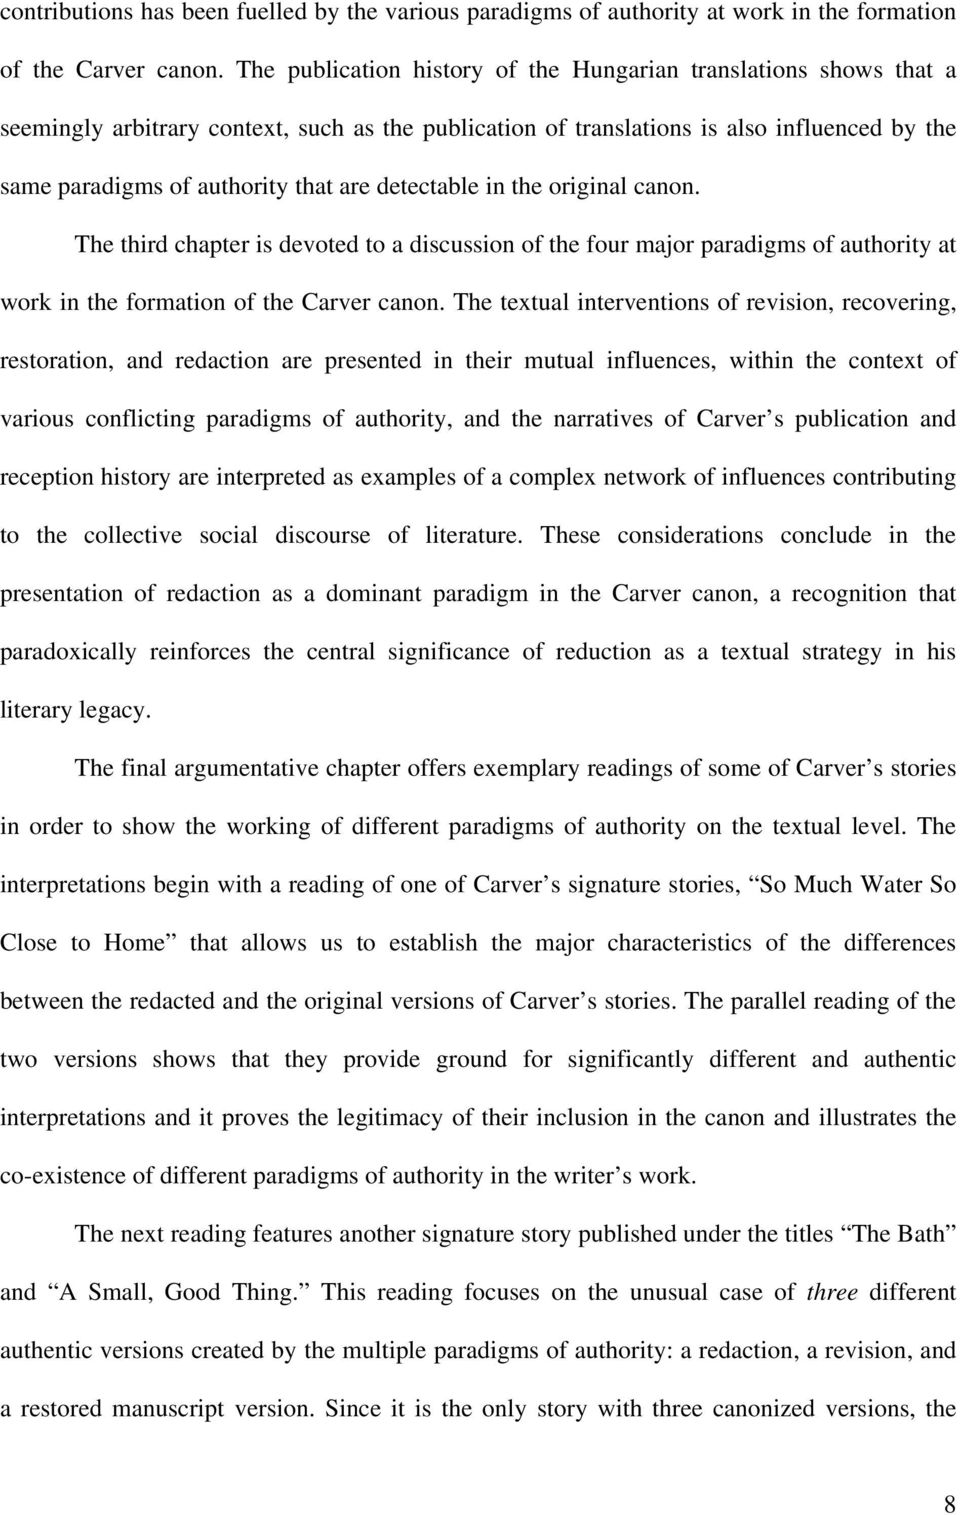 detectable in the original canon. The third chapter is devoted to a discussion of the four major paradigms of authority at work in the formation of the Carver canon.